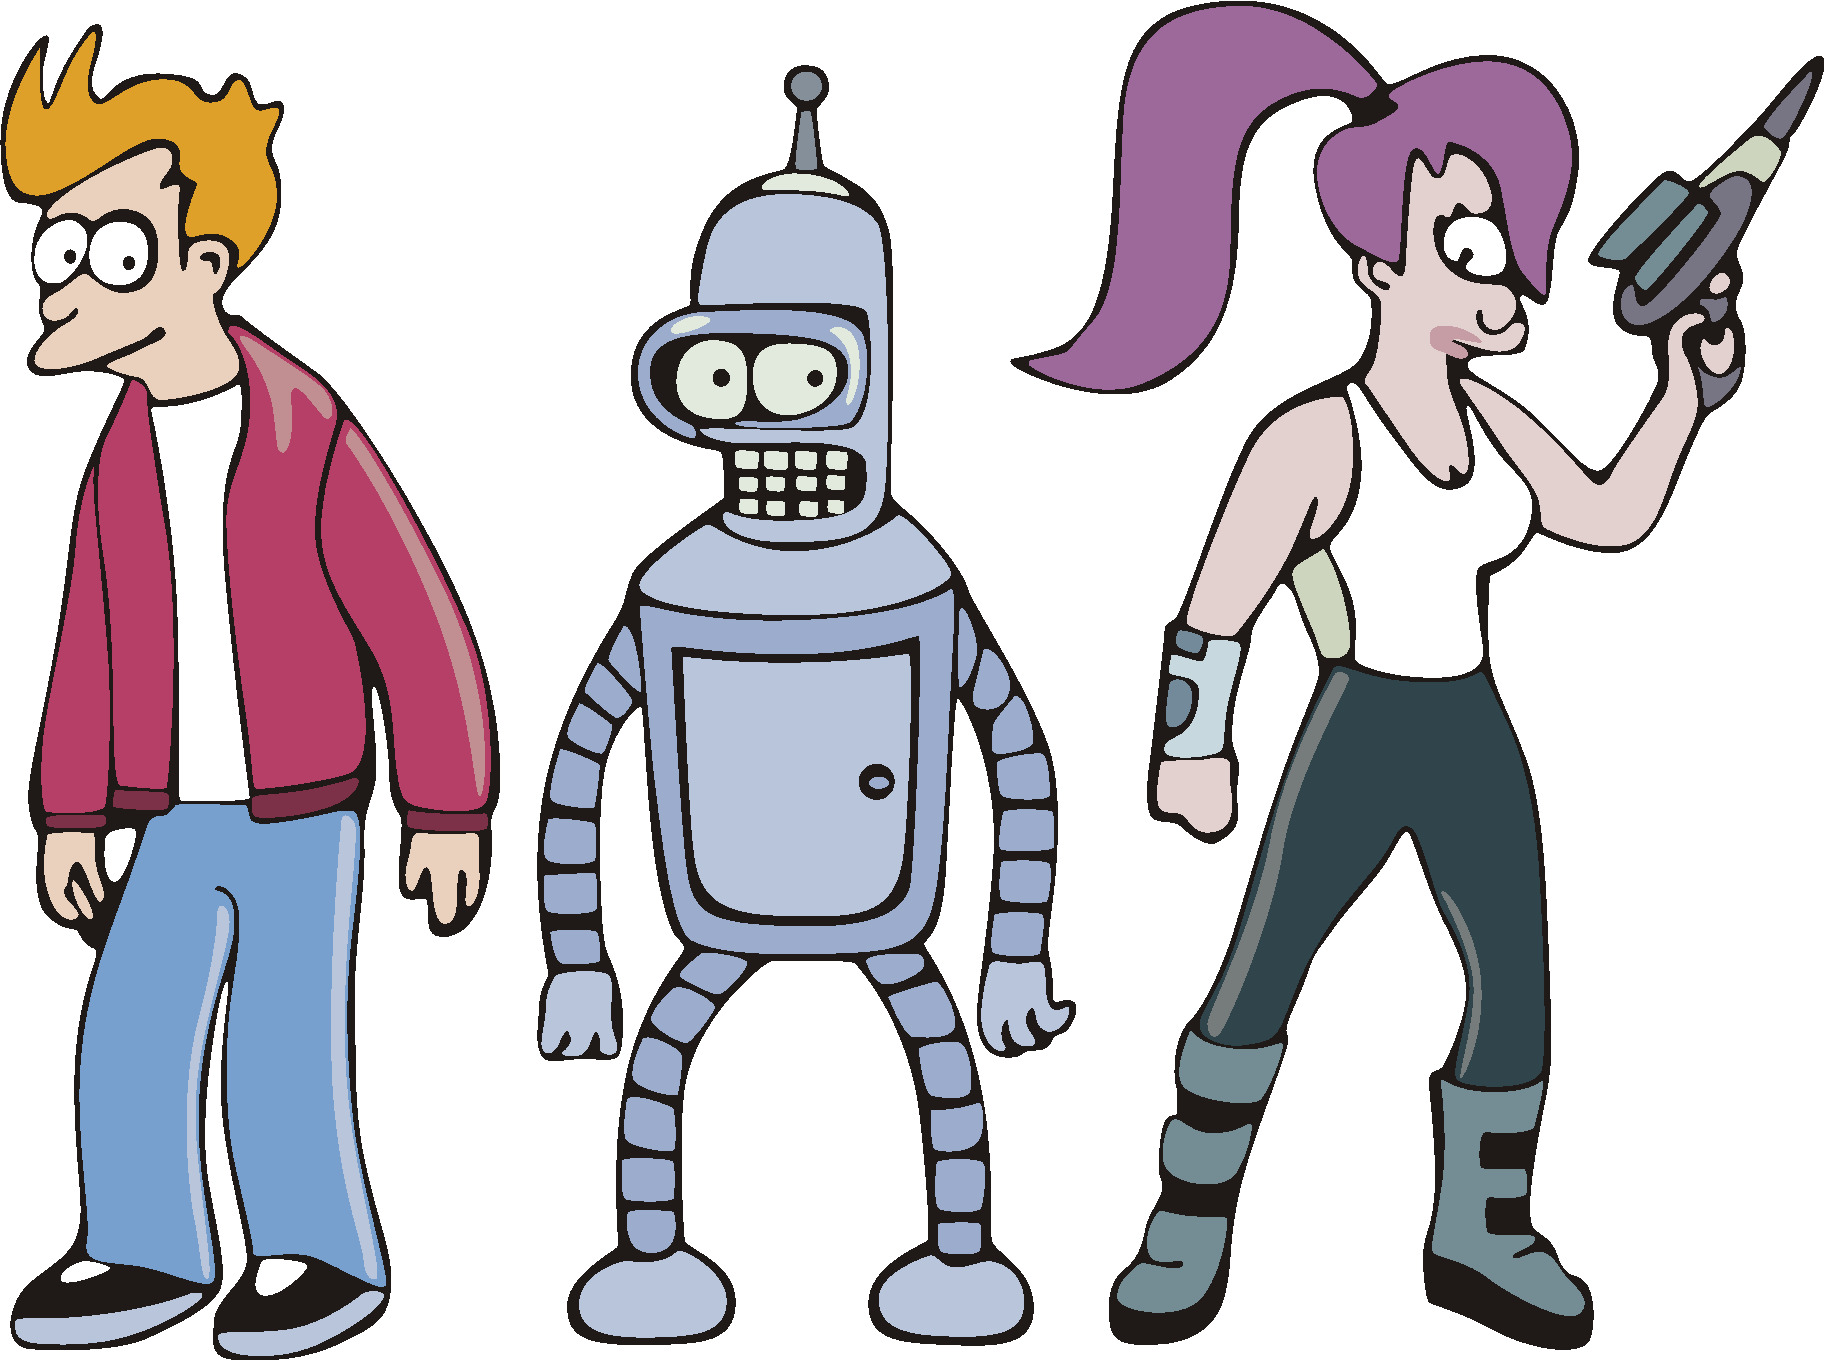 leela Philip fry Futurama HD Wallpaper